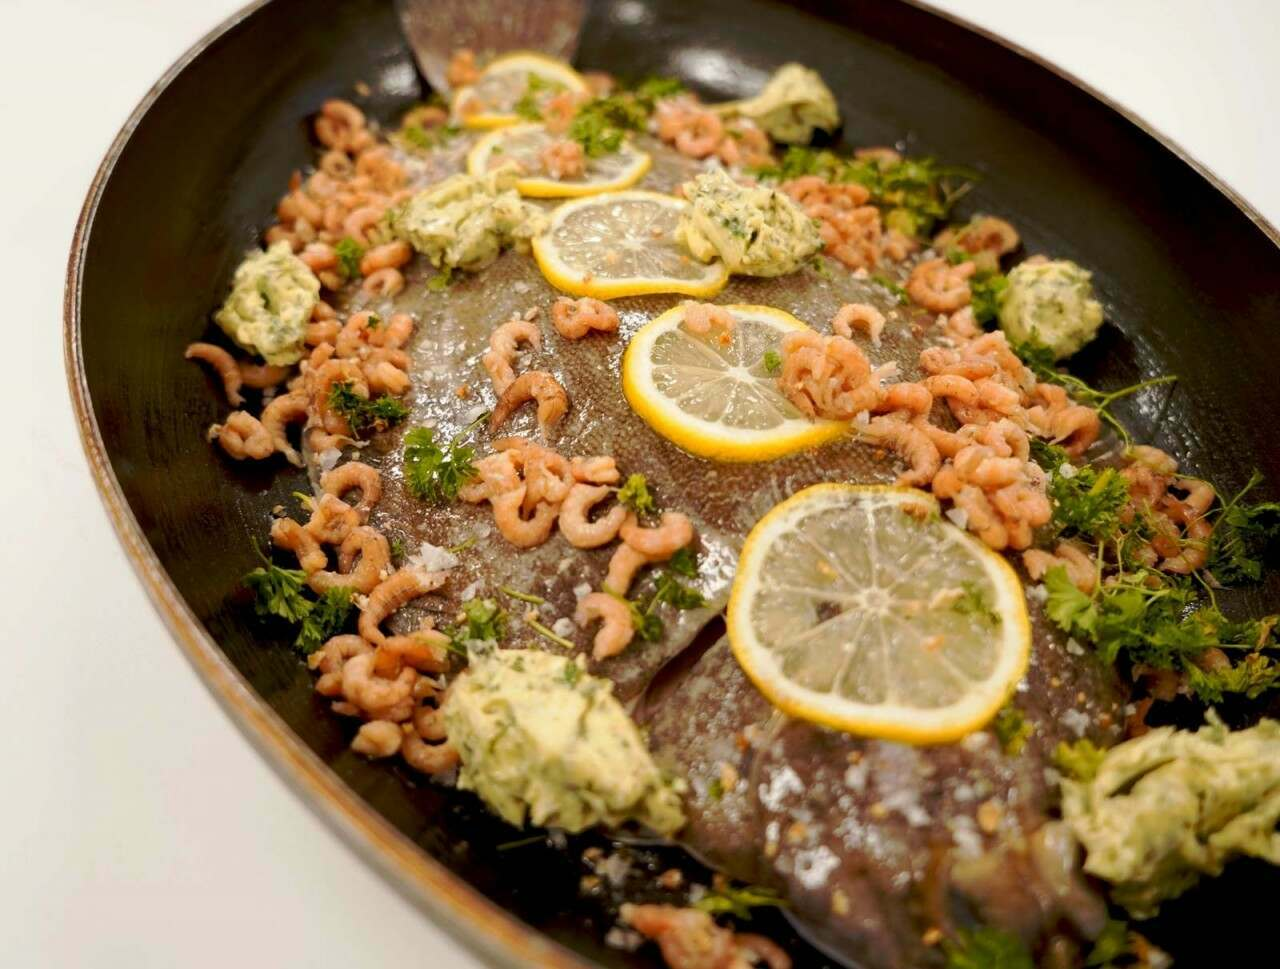 Lemon Sole with Brown Shrimp and Garlic & Herb Butter